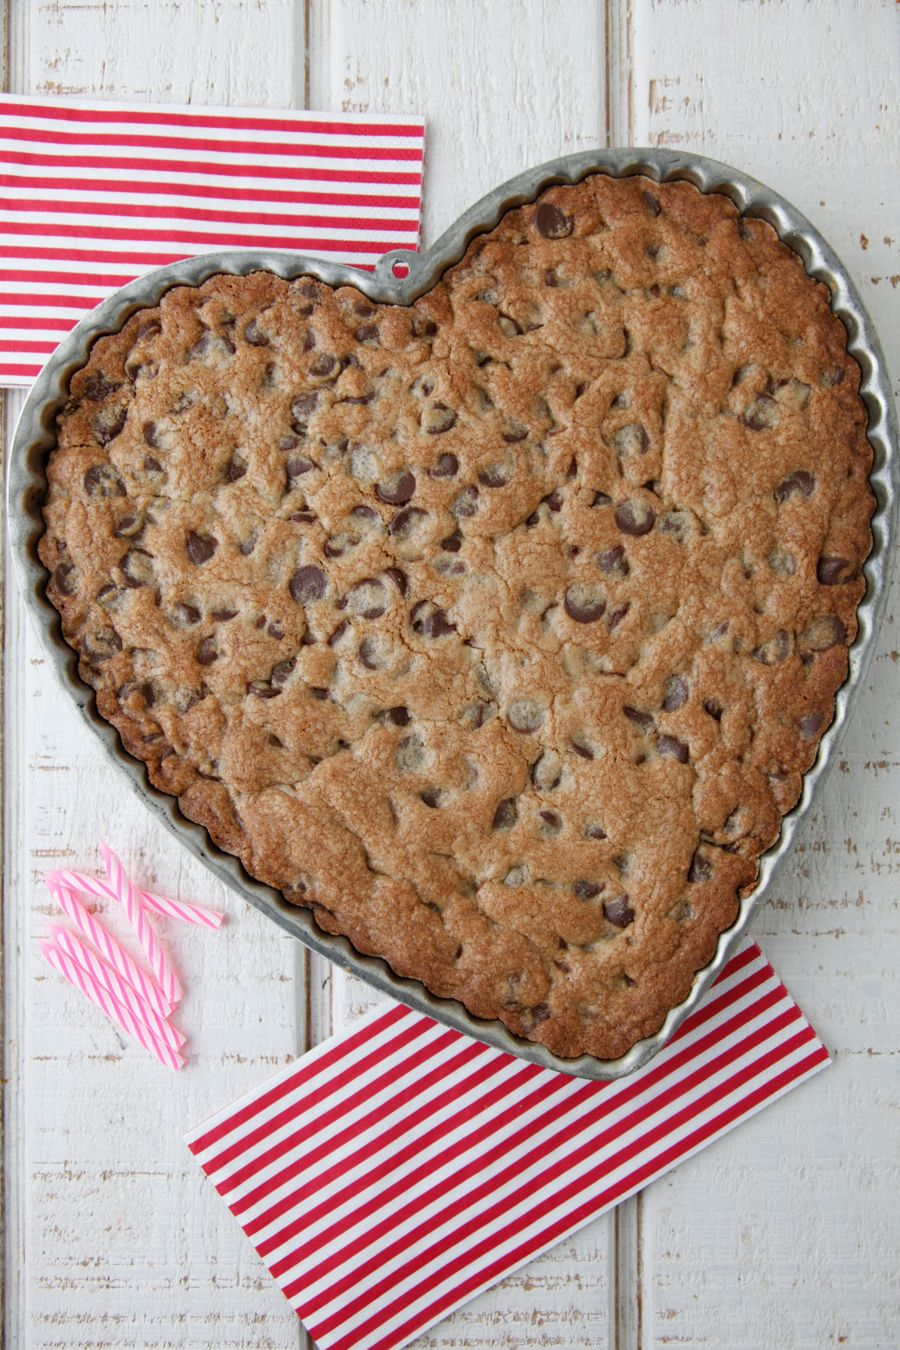 Chocolate Chip Cookie Cake from Weelicious